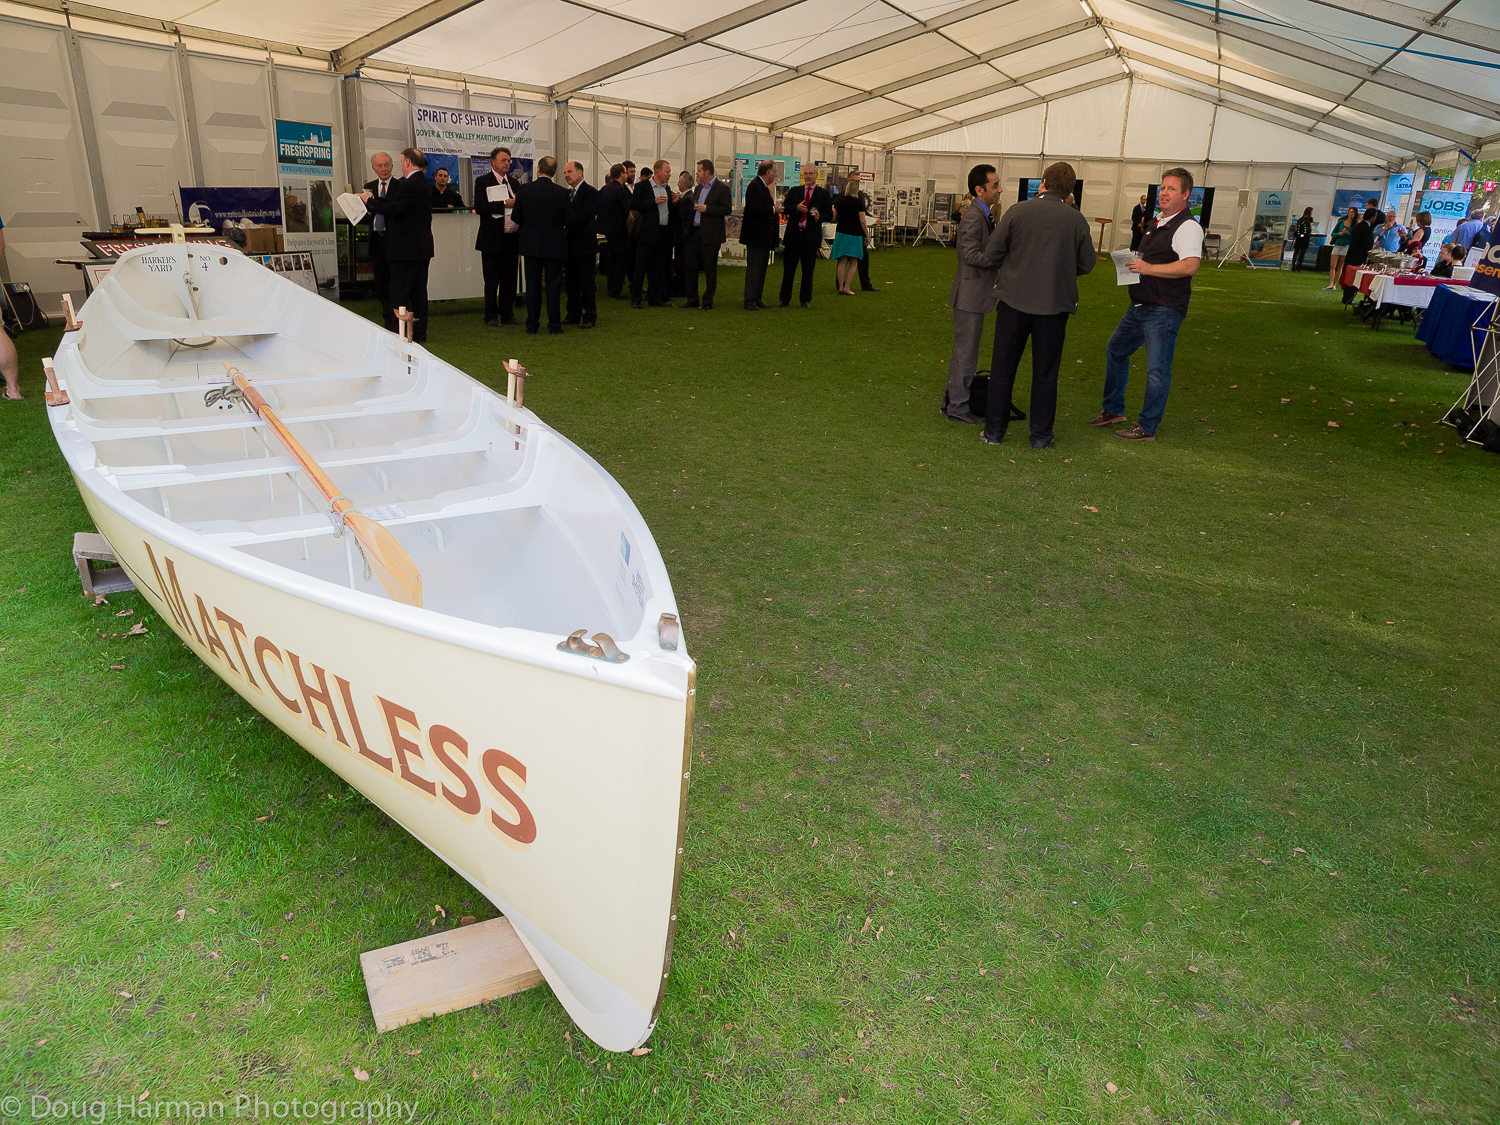 National Maritime Development Group: Spice Trade Event, Tall Ships Regatta 2014, Greenwich